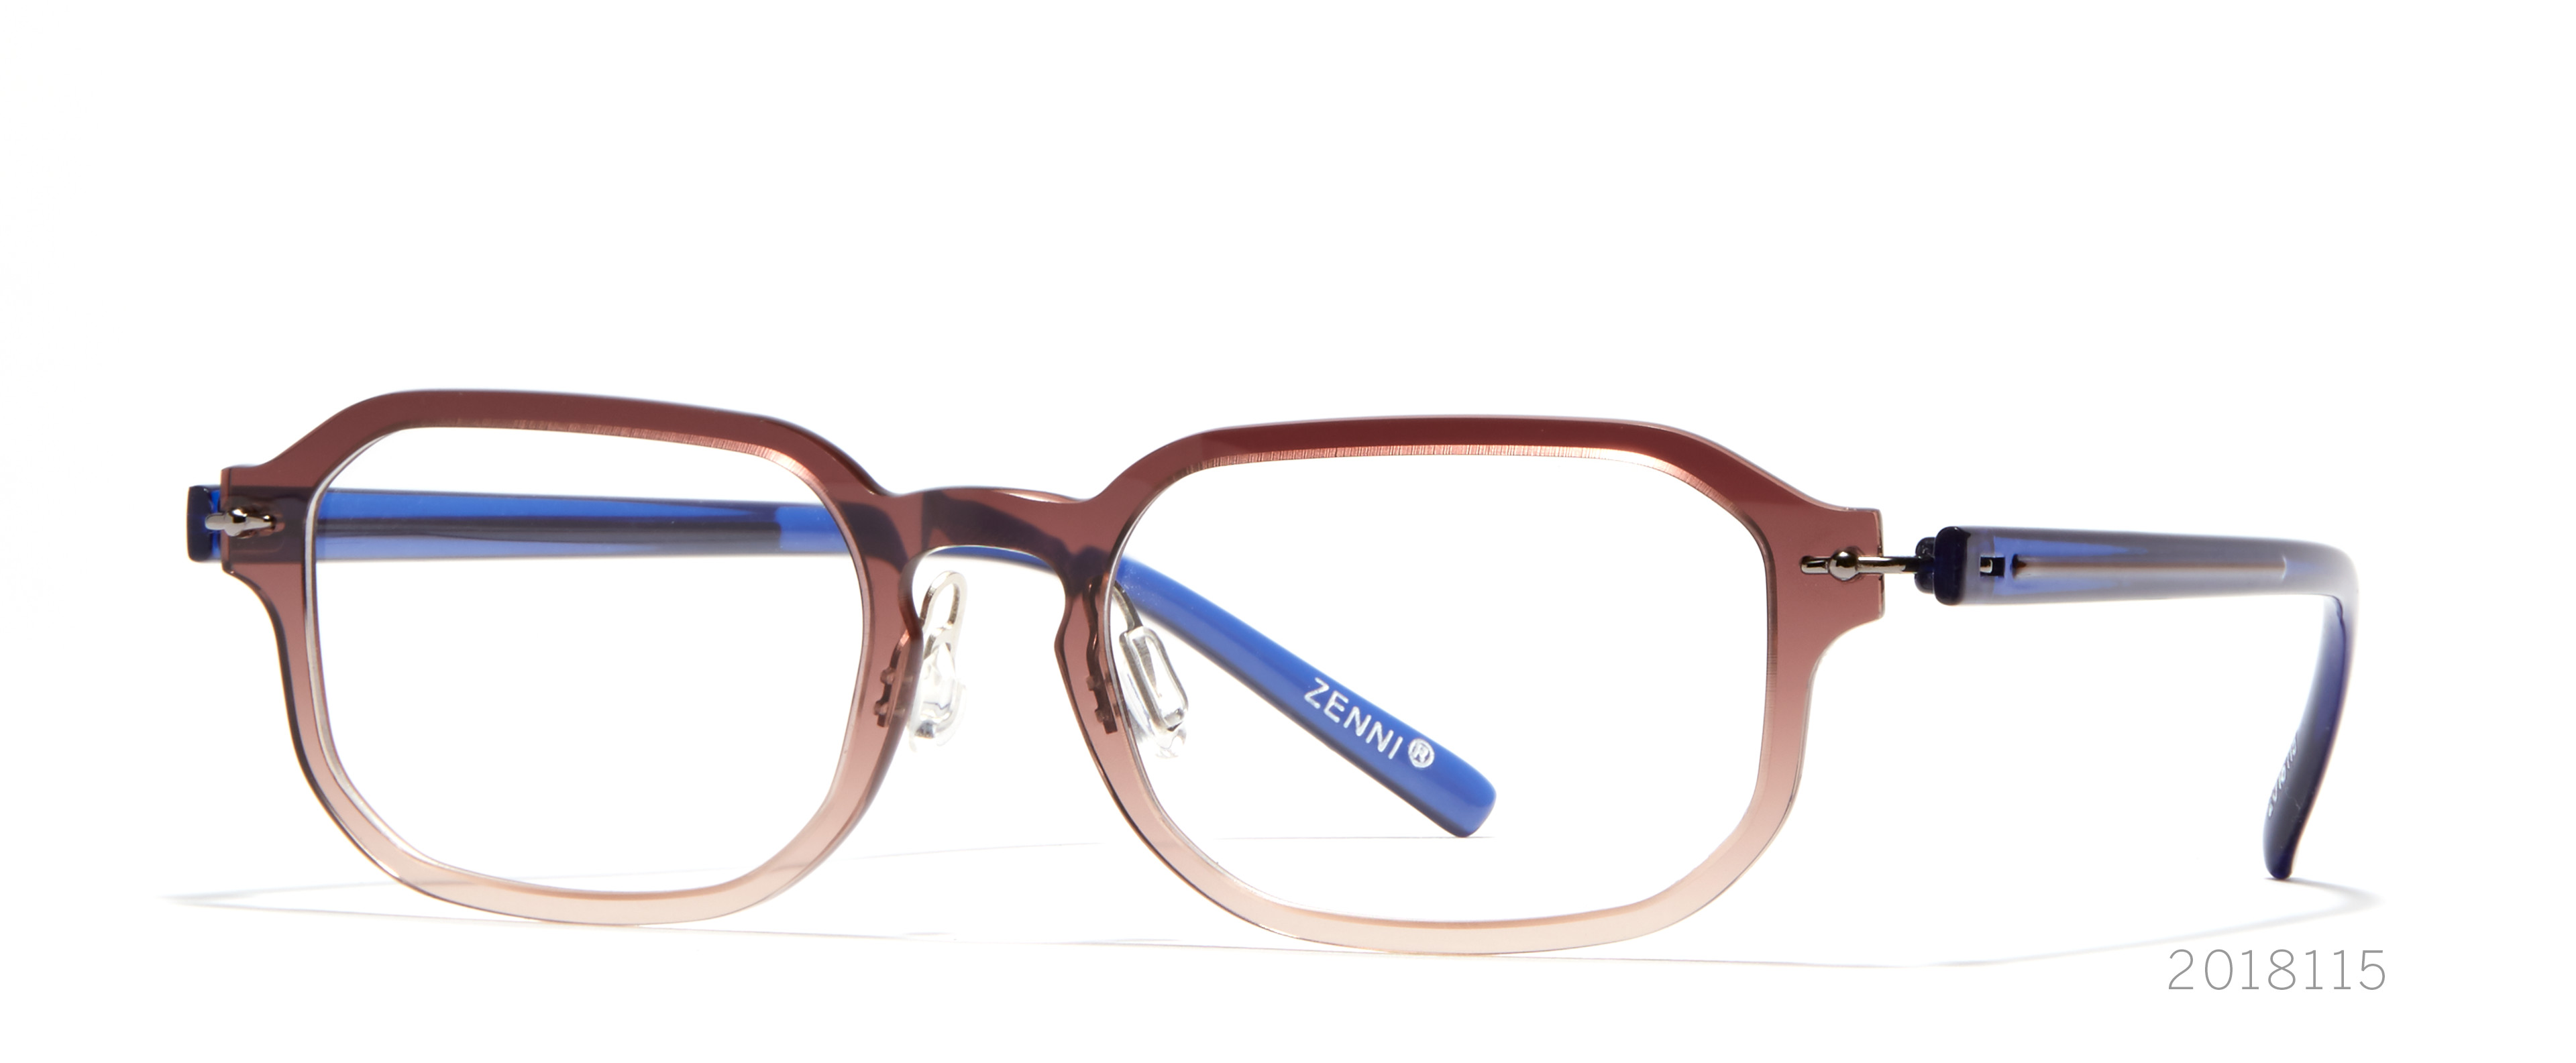 10 Glasses for Oval Faces | Zenni Optical